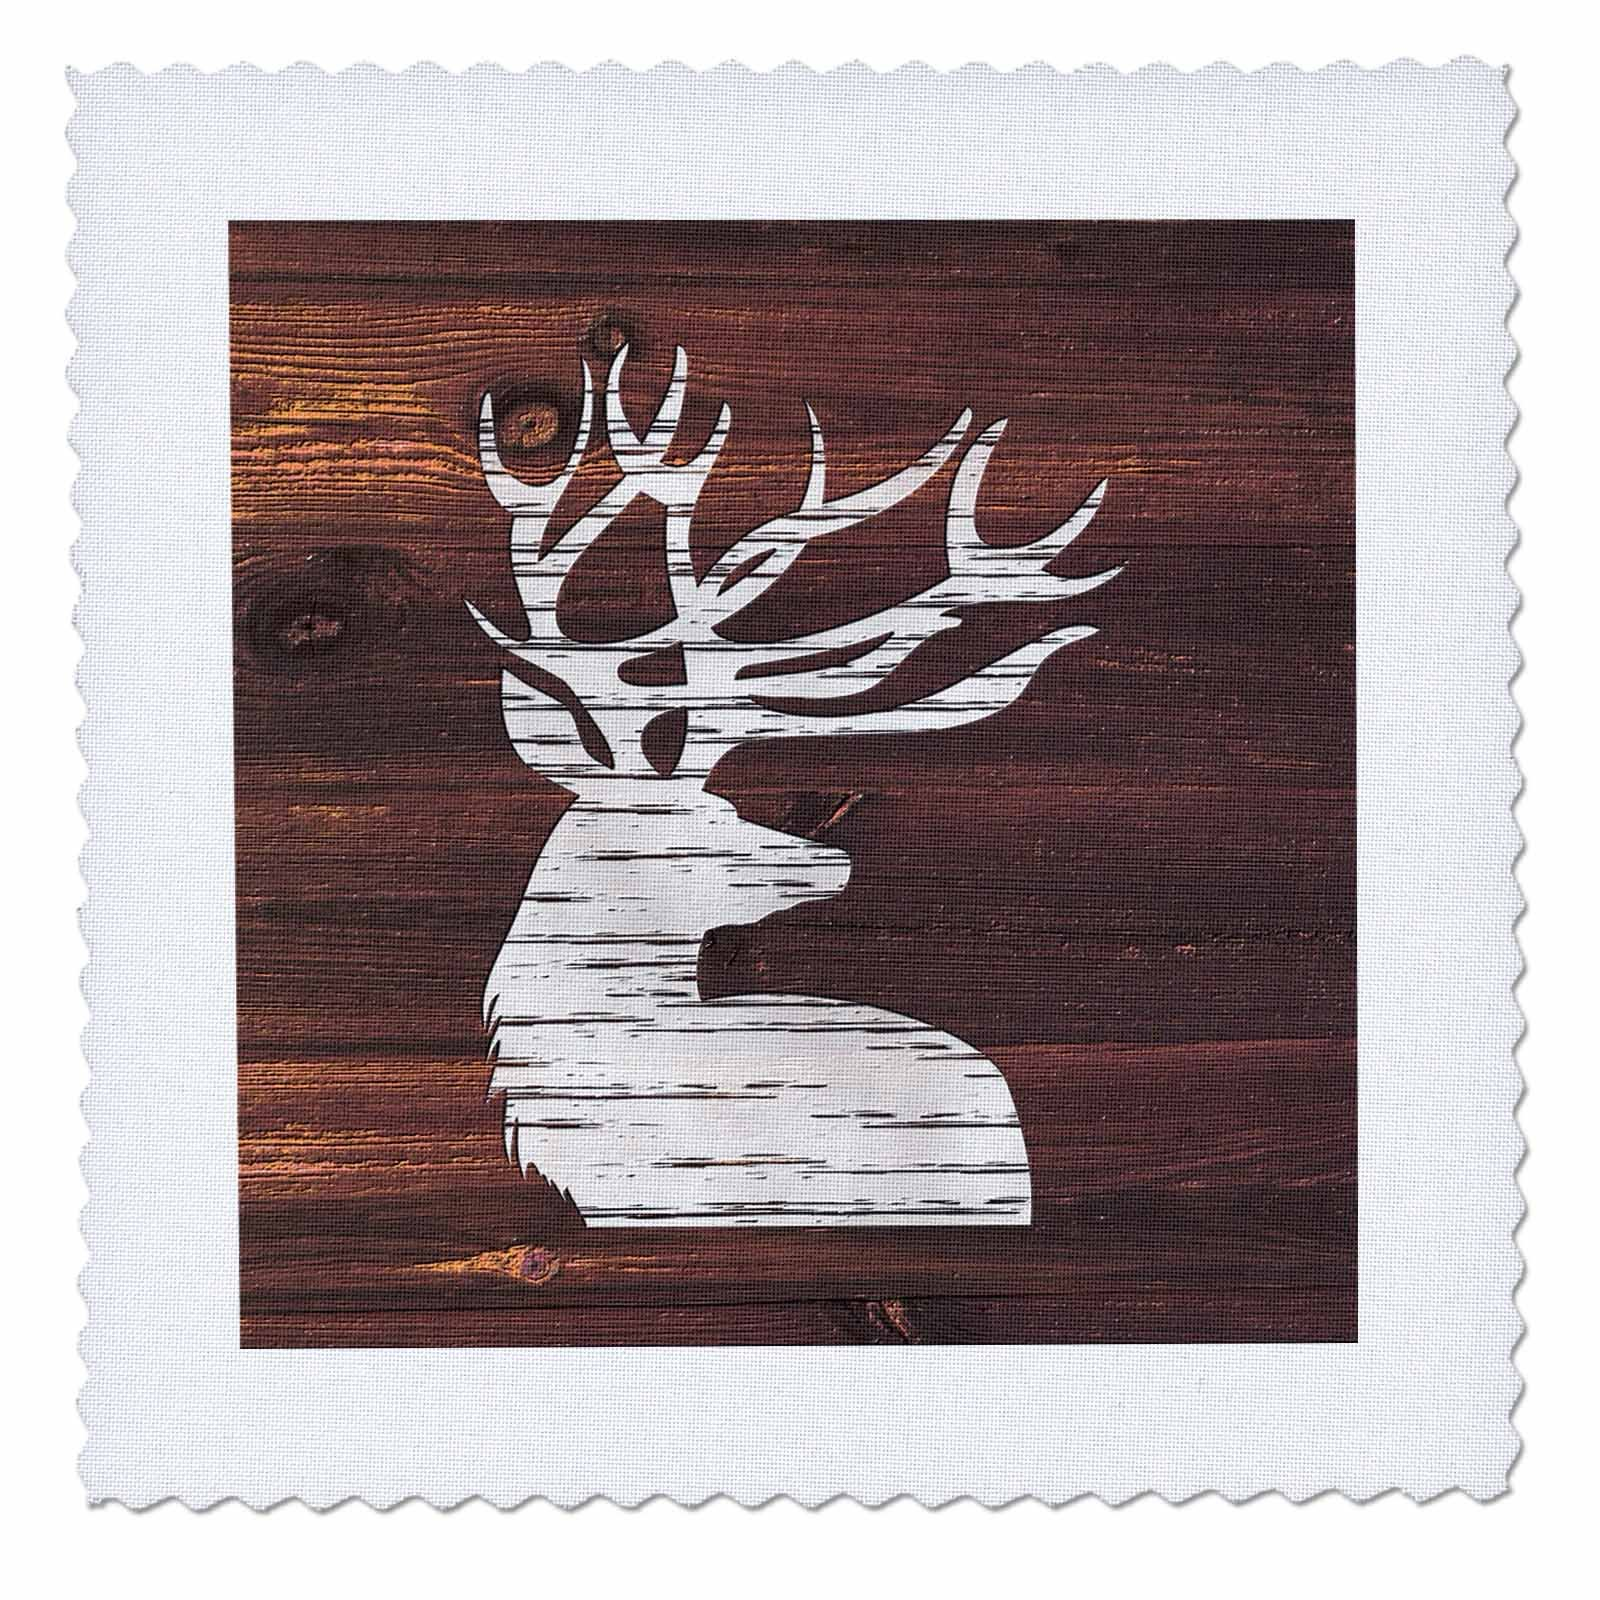 3dRose Russ Billington Designs - White Painted Stag with Antlers on Brown Weatherboard- Not Real Wood - 20x20 inch quilt square (qs_262014_8)